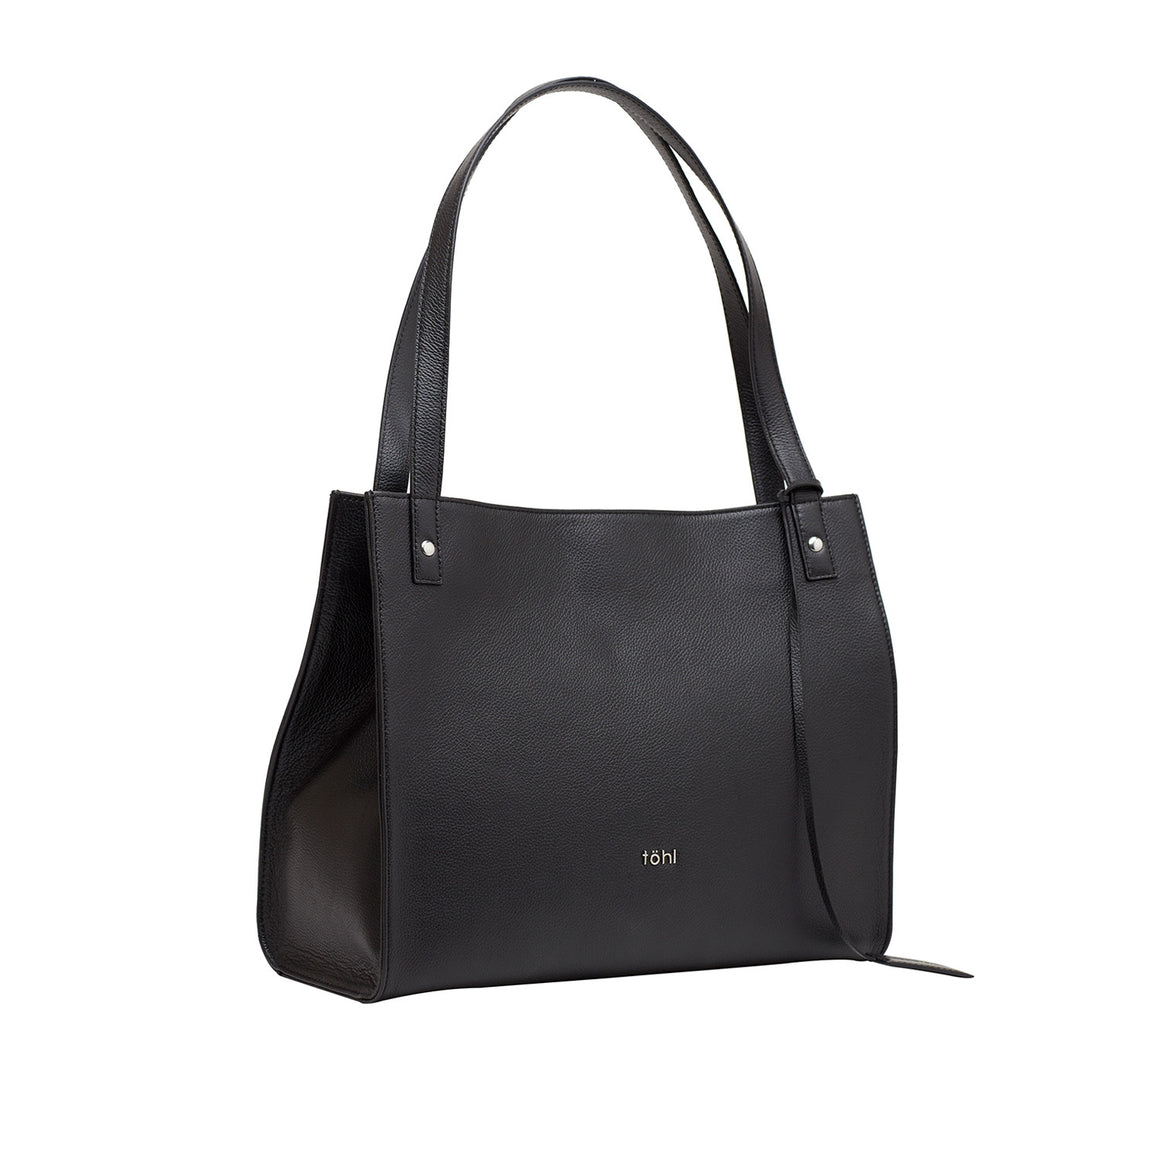 TT 0005 - TOHL STANTON WOMEN'S TOTE BAG - CHARCOAL BLACK